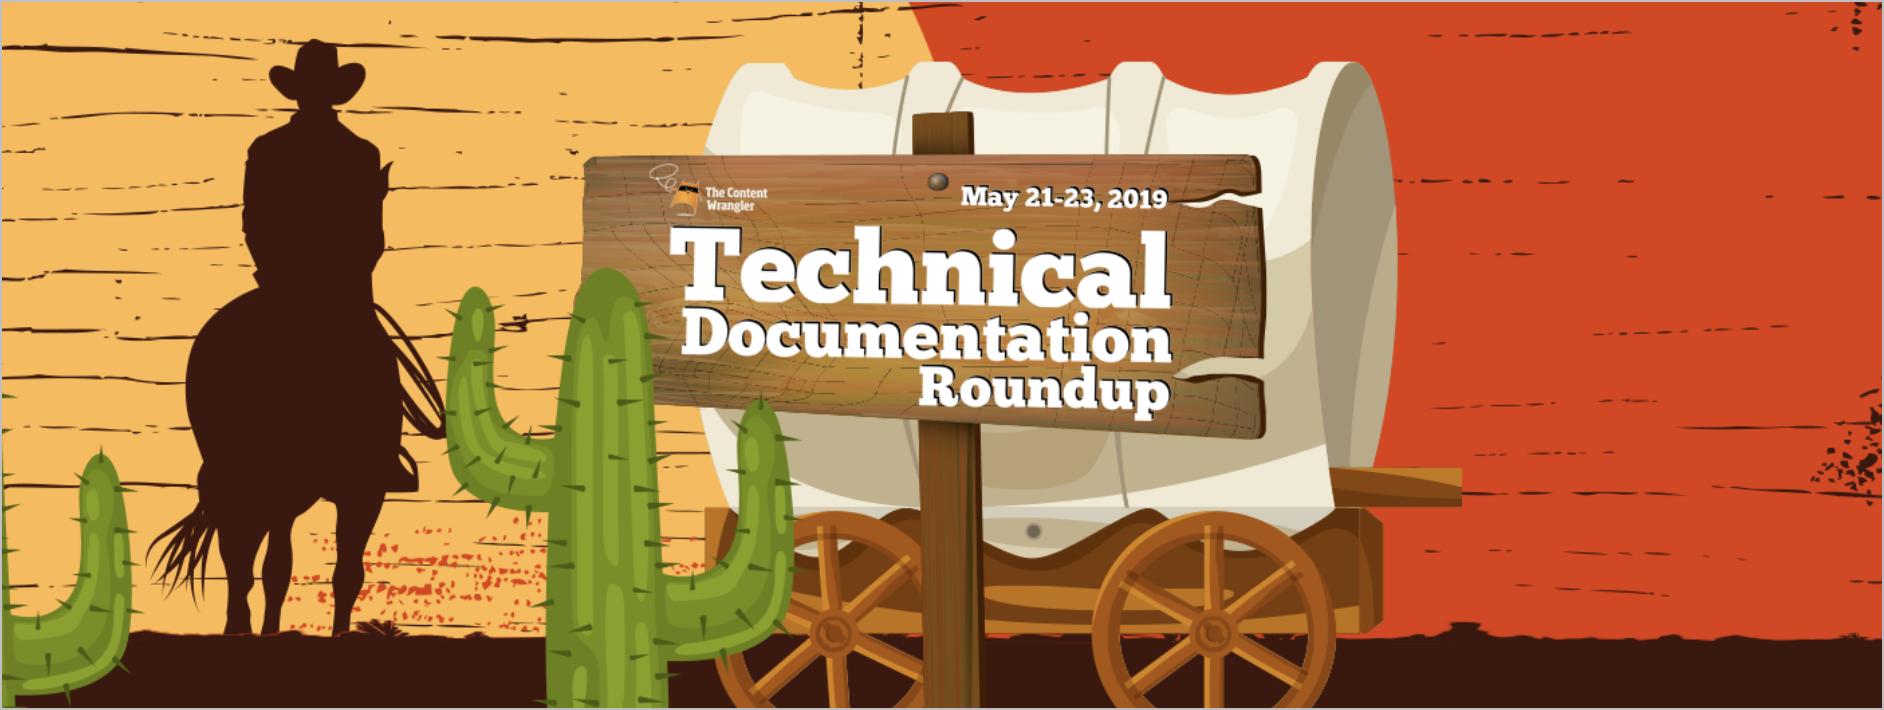 Technical Documentation RoundUp, by The Content Wrangler